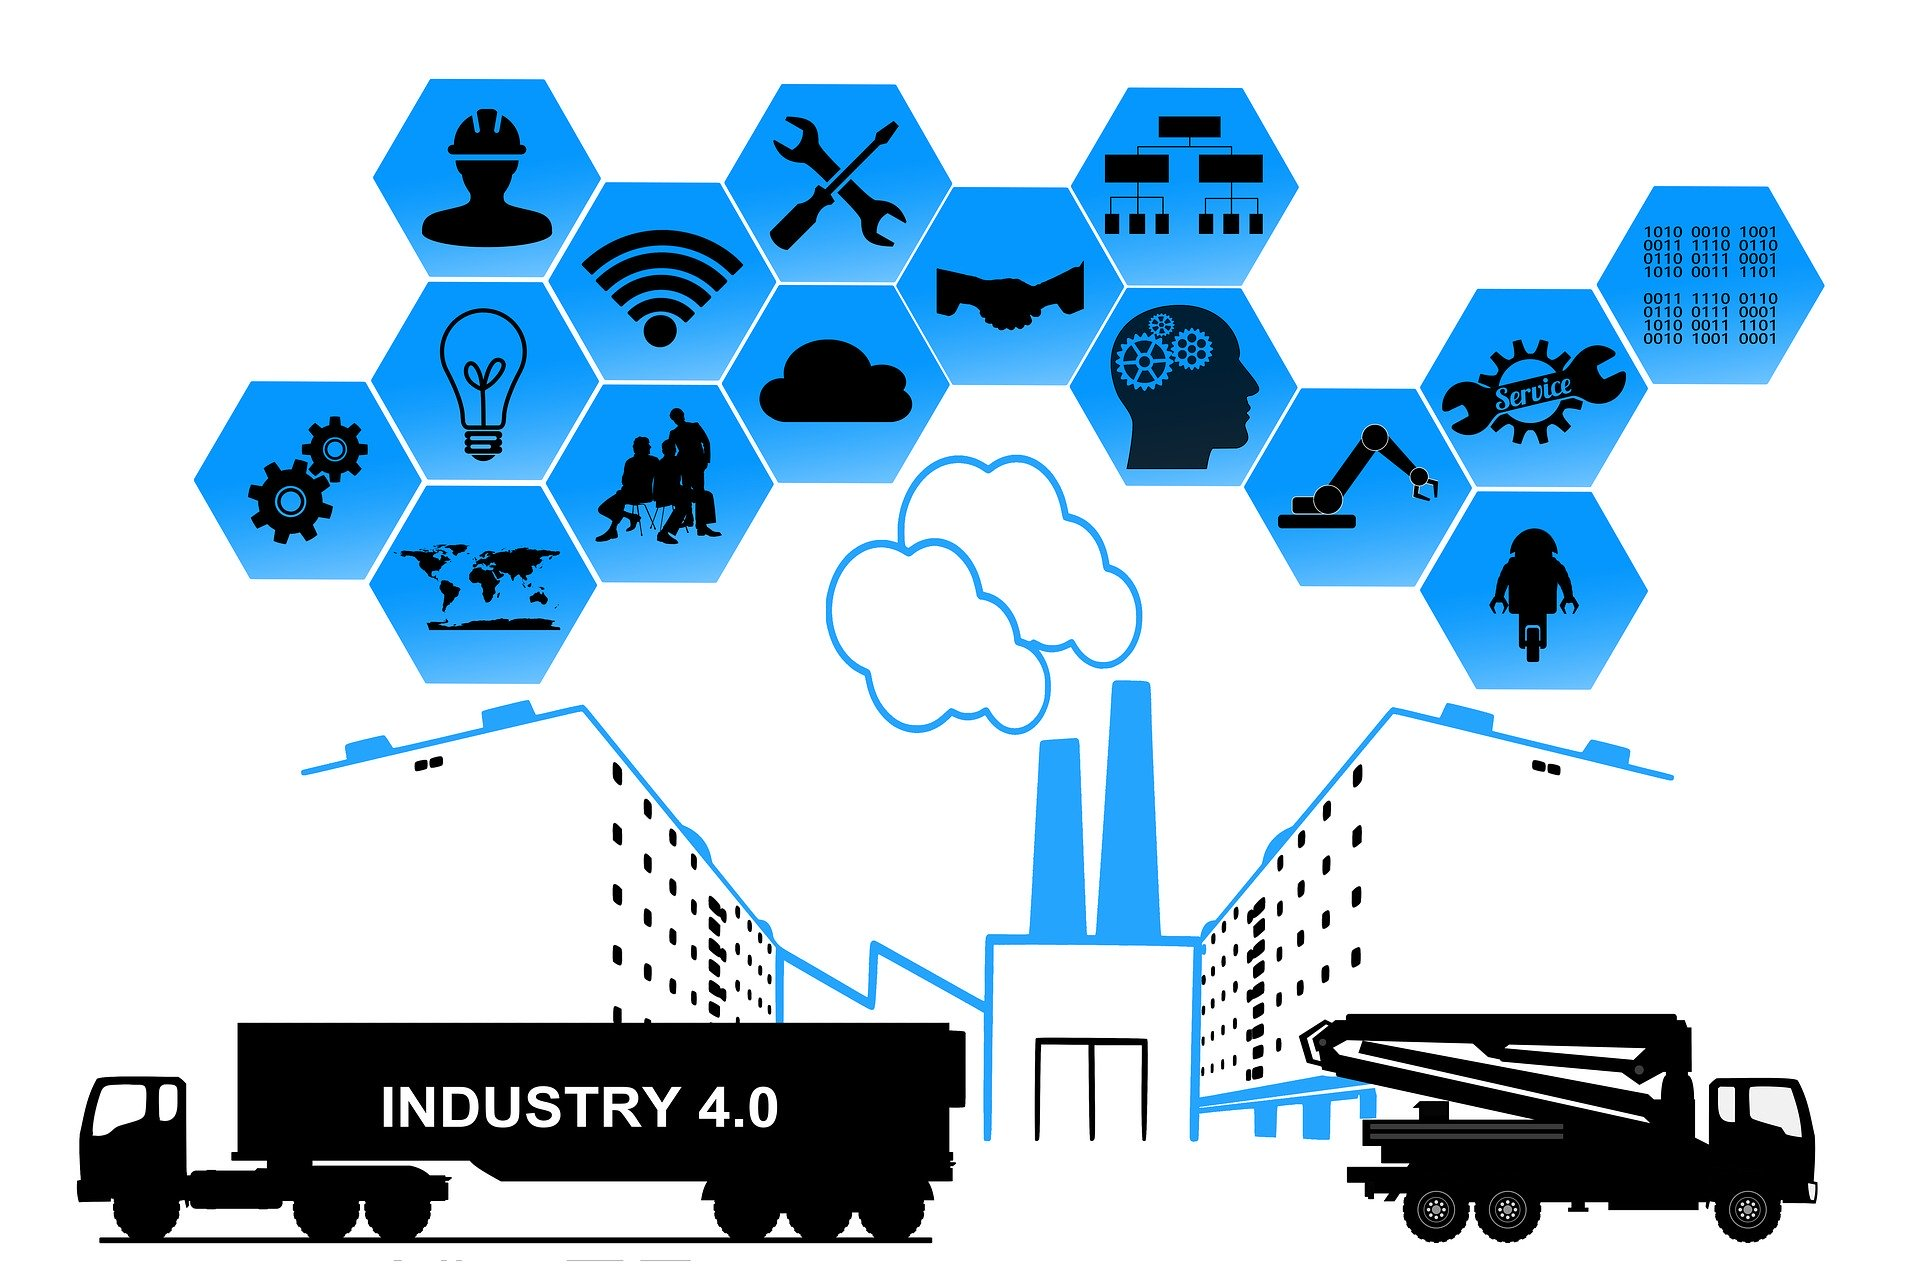 5 features easy-to-remember: New and fully automated approach to manufacturing production, supply chain and life cycle management Charged by smart systems, real-time data and machine learning  Connects digital and physical systems with mainstream automation Supports instant collaboration between factory divisions Helps you define your factory's growth strategy and transform the way your factory operates